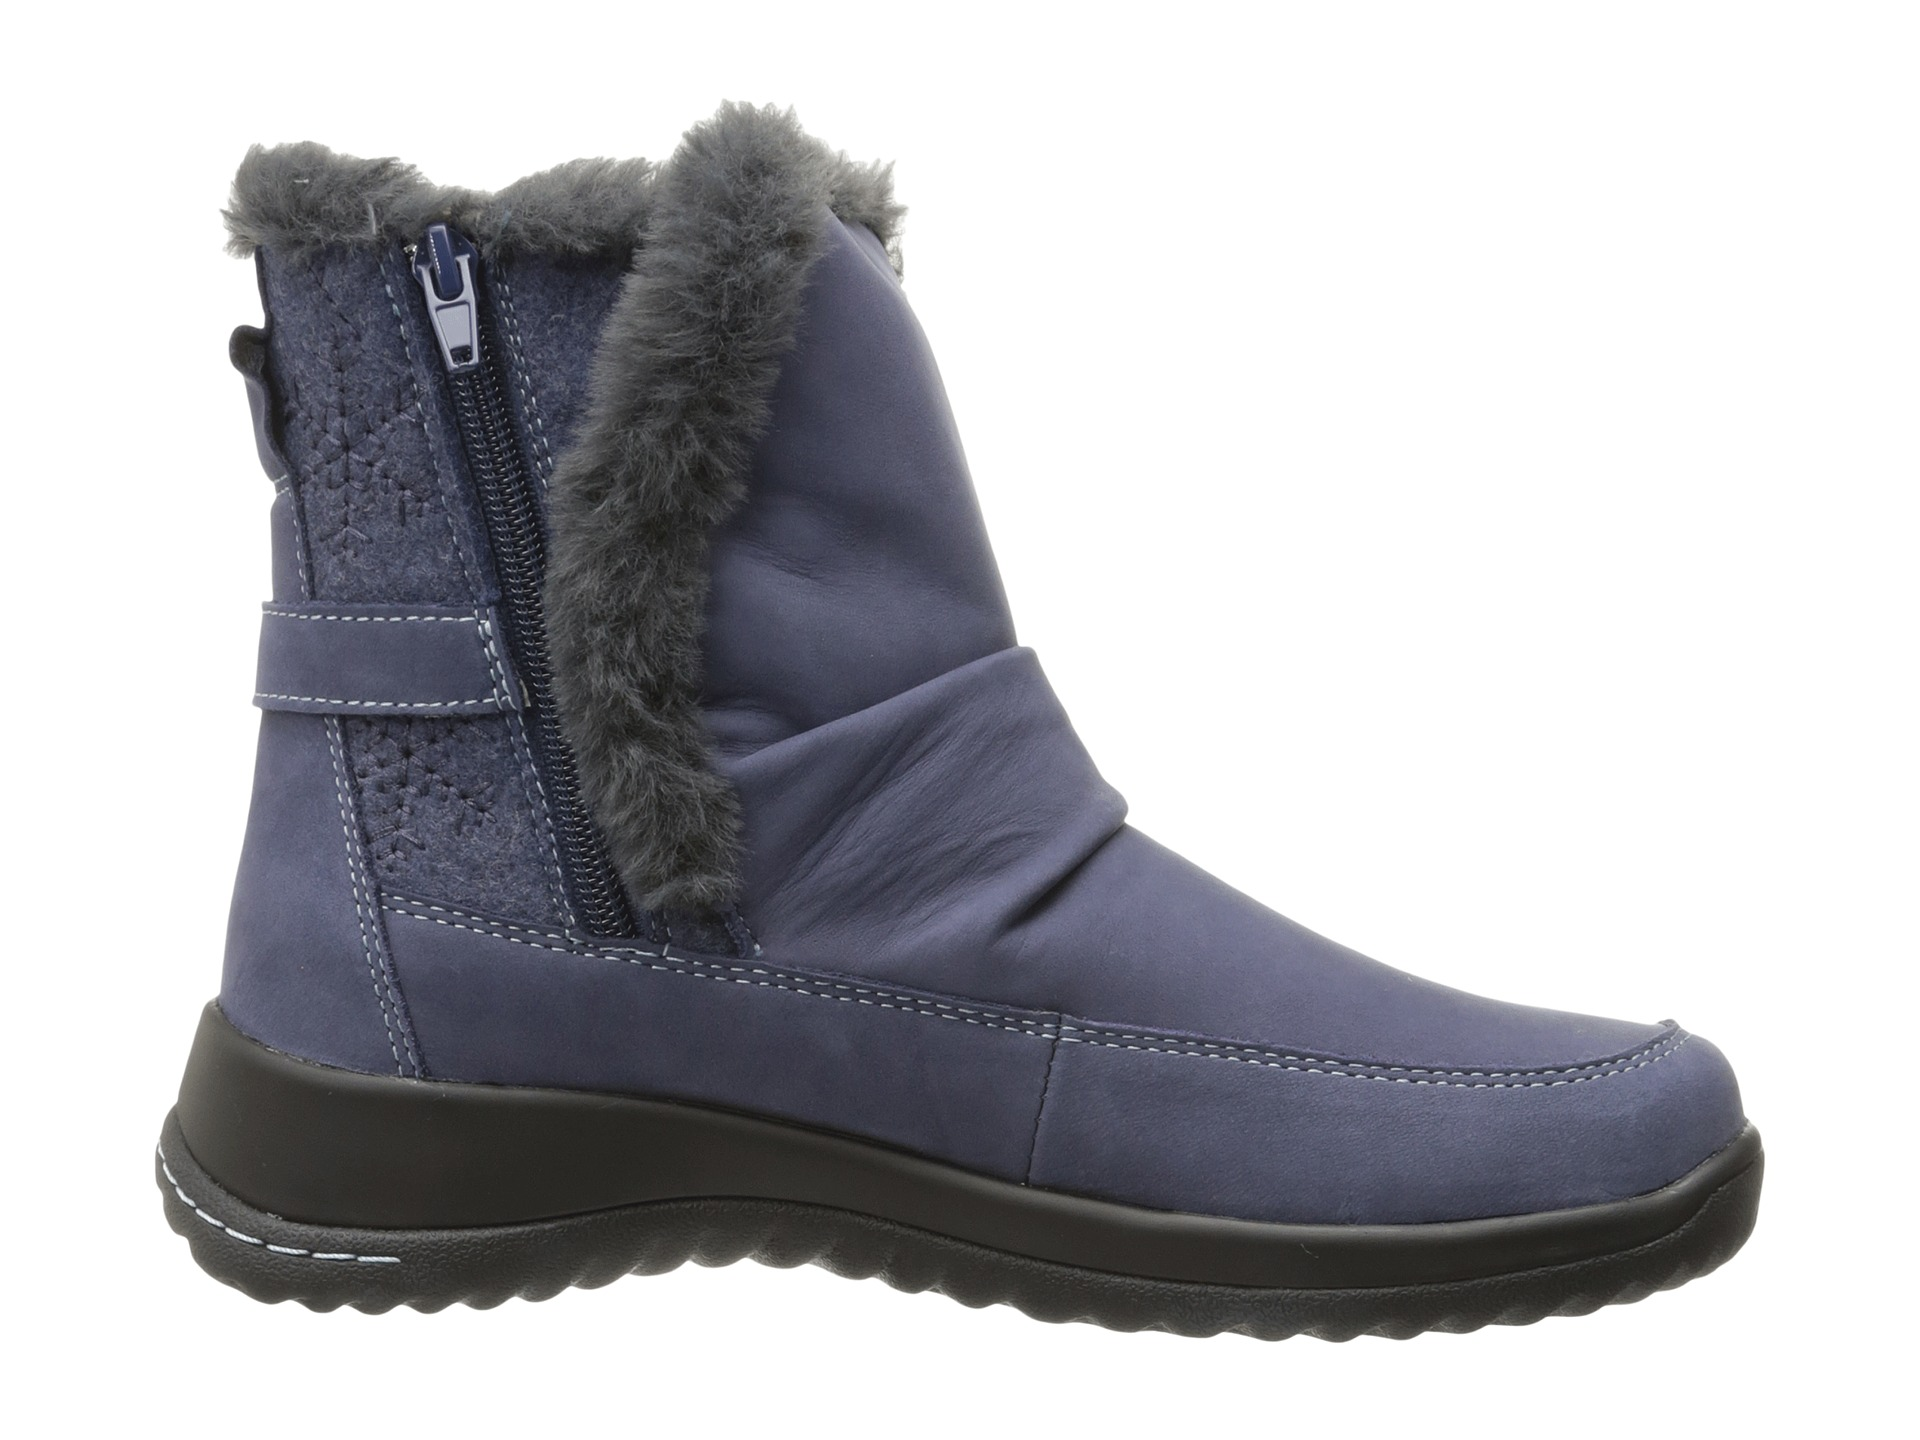 Jambu Women's SYCAMORE Snow Boot Economical, stylish, and eye-catching shoes